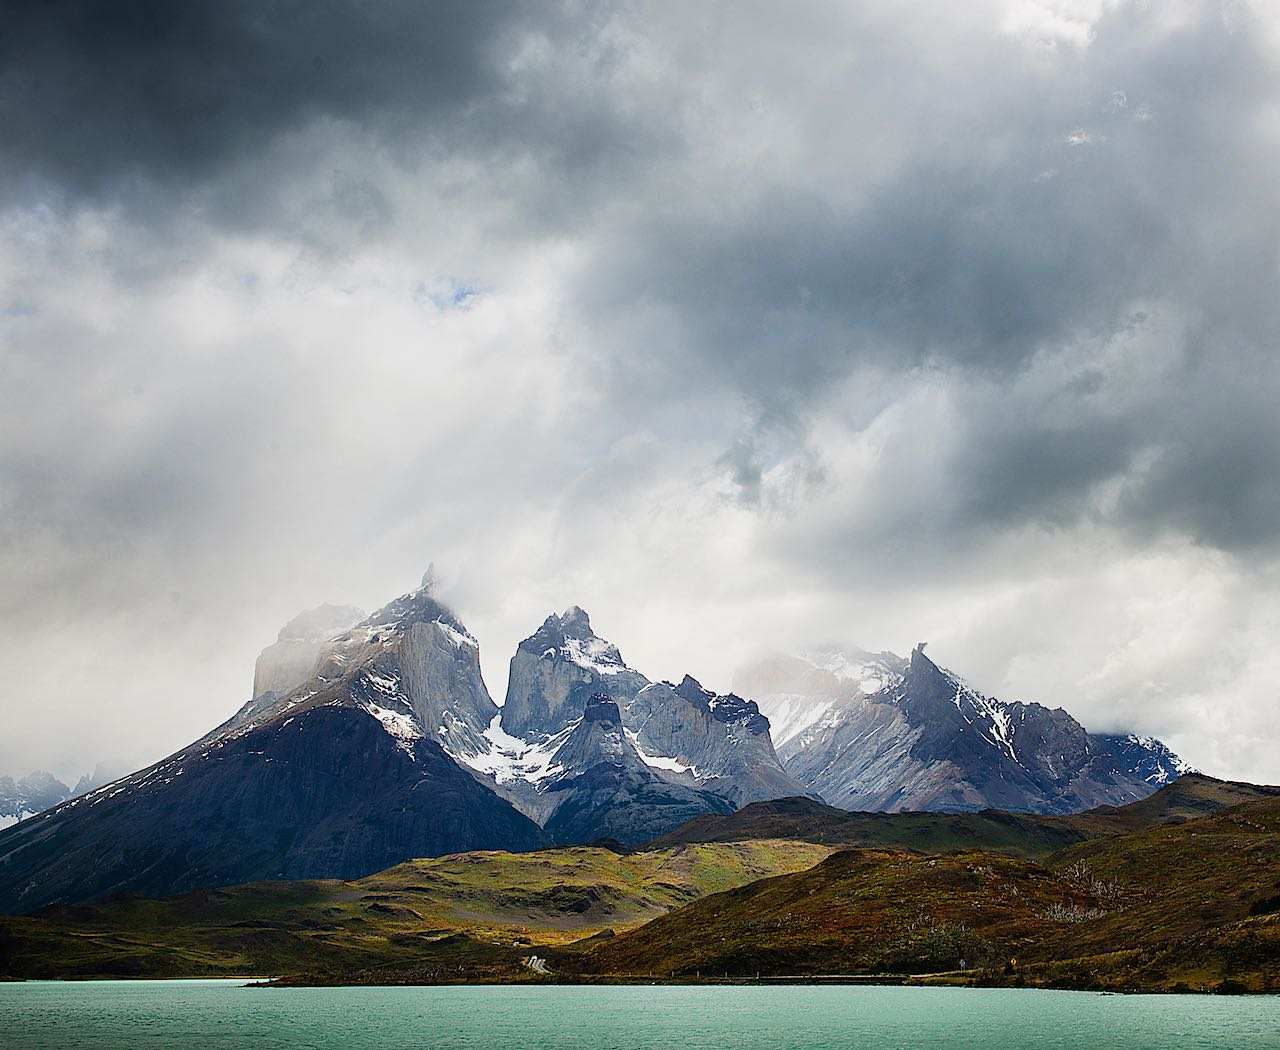 A Photographic Journey Through The Torres Del Paine